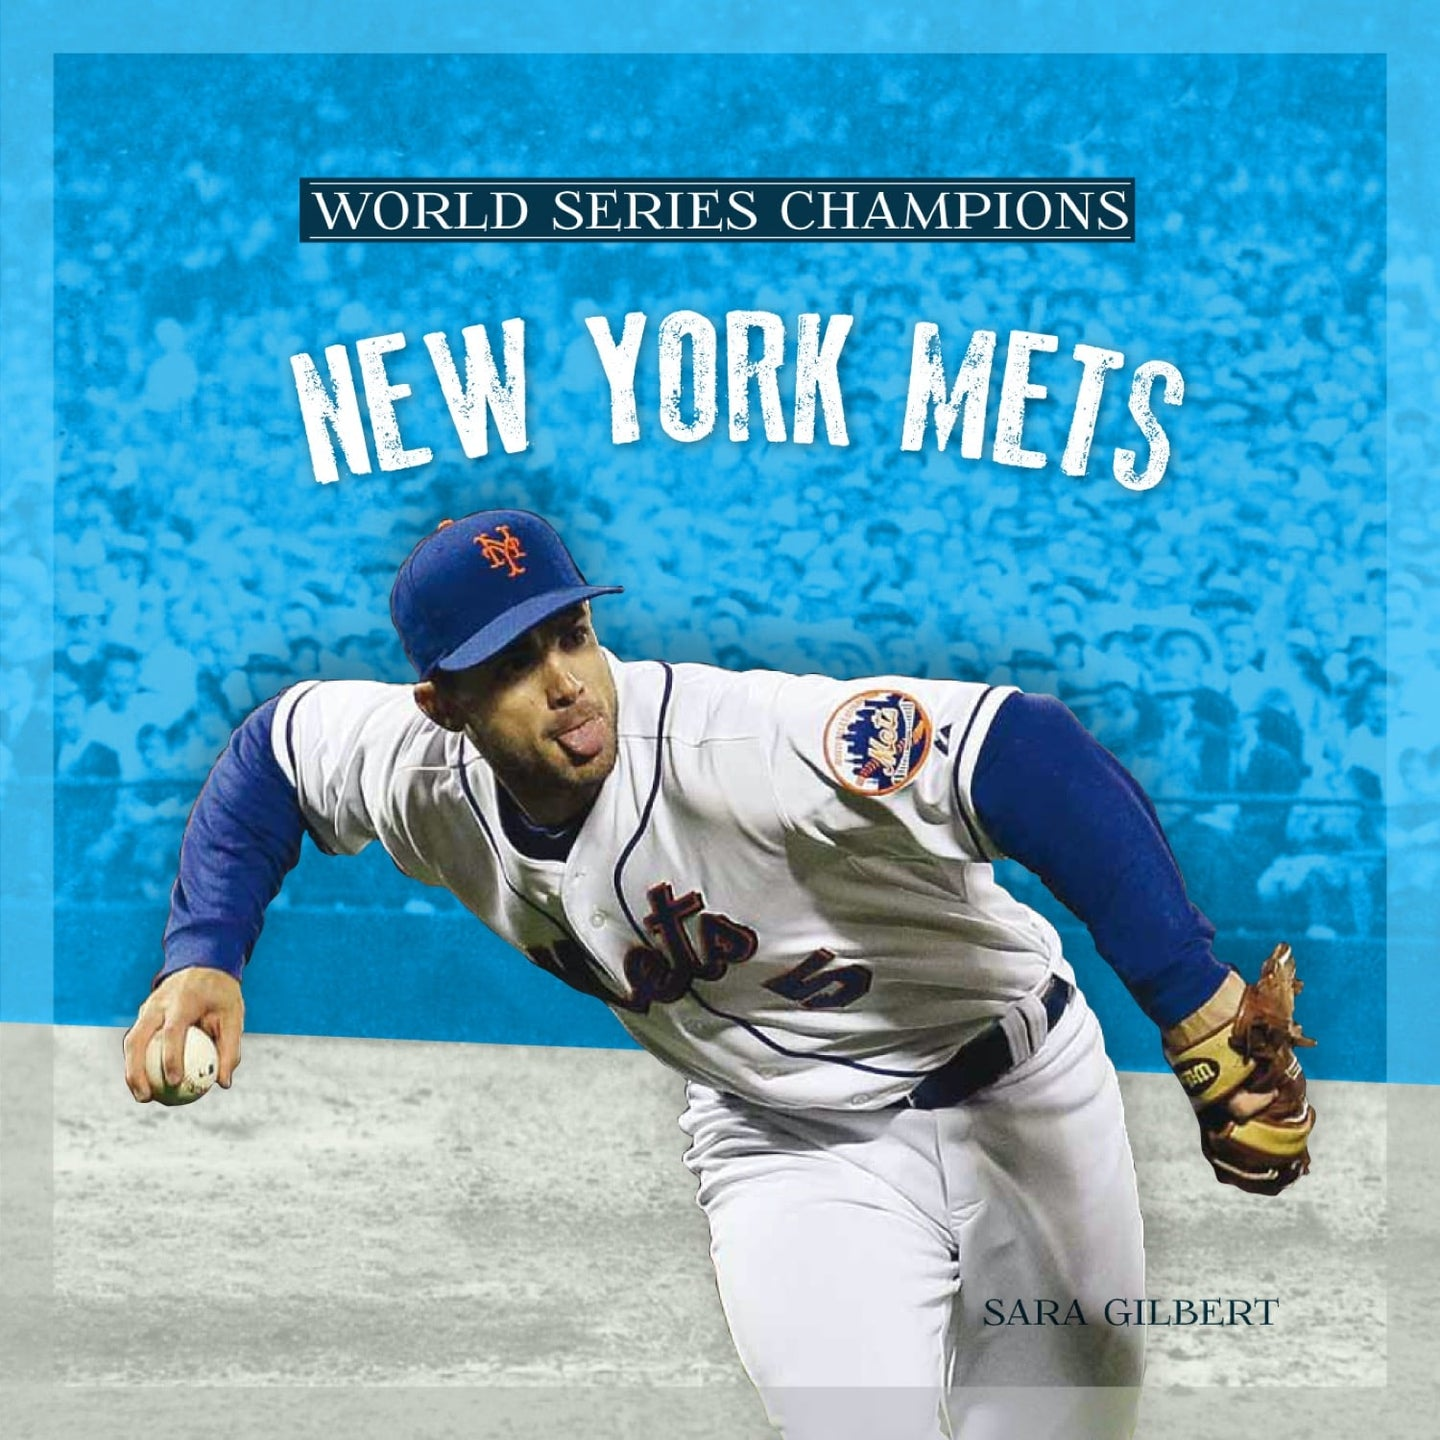 World Series Champions: New York Mets